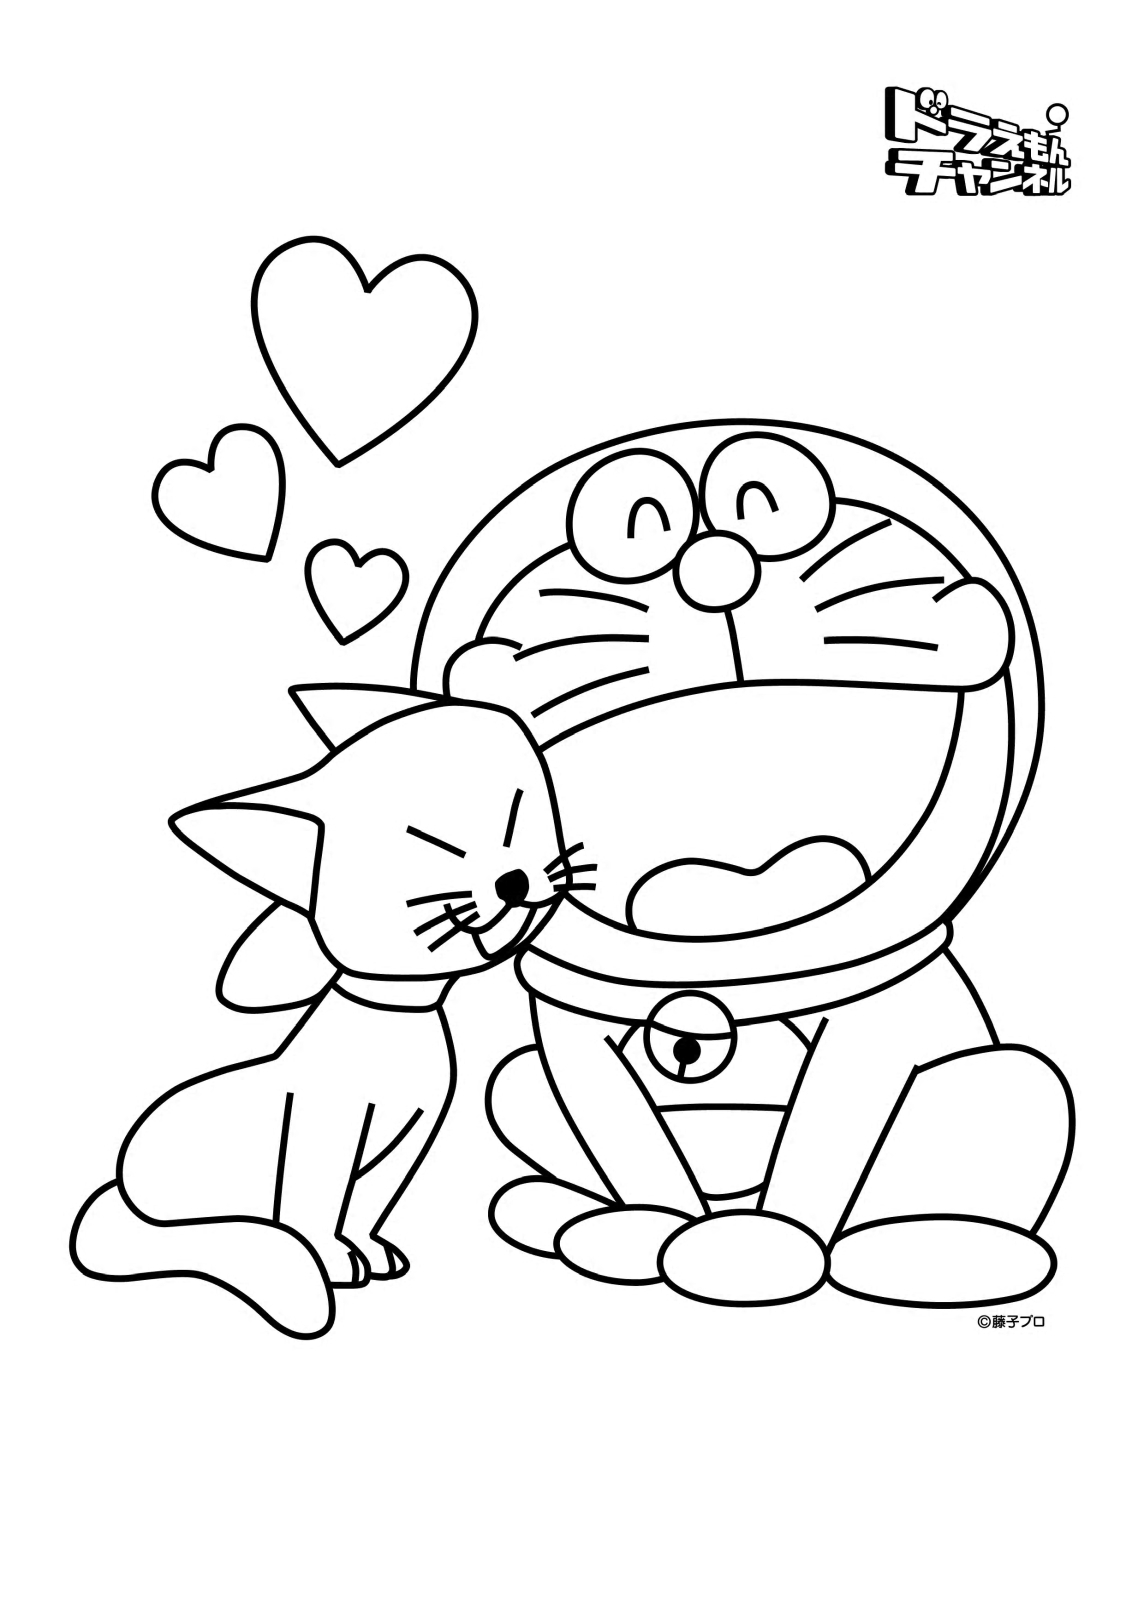 doraemon coloring book014jpg - Doraemon Colouring Book